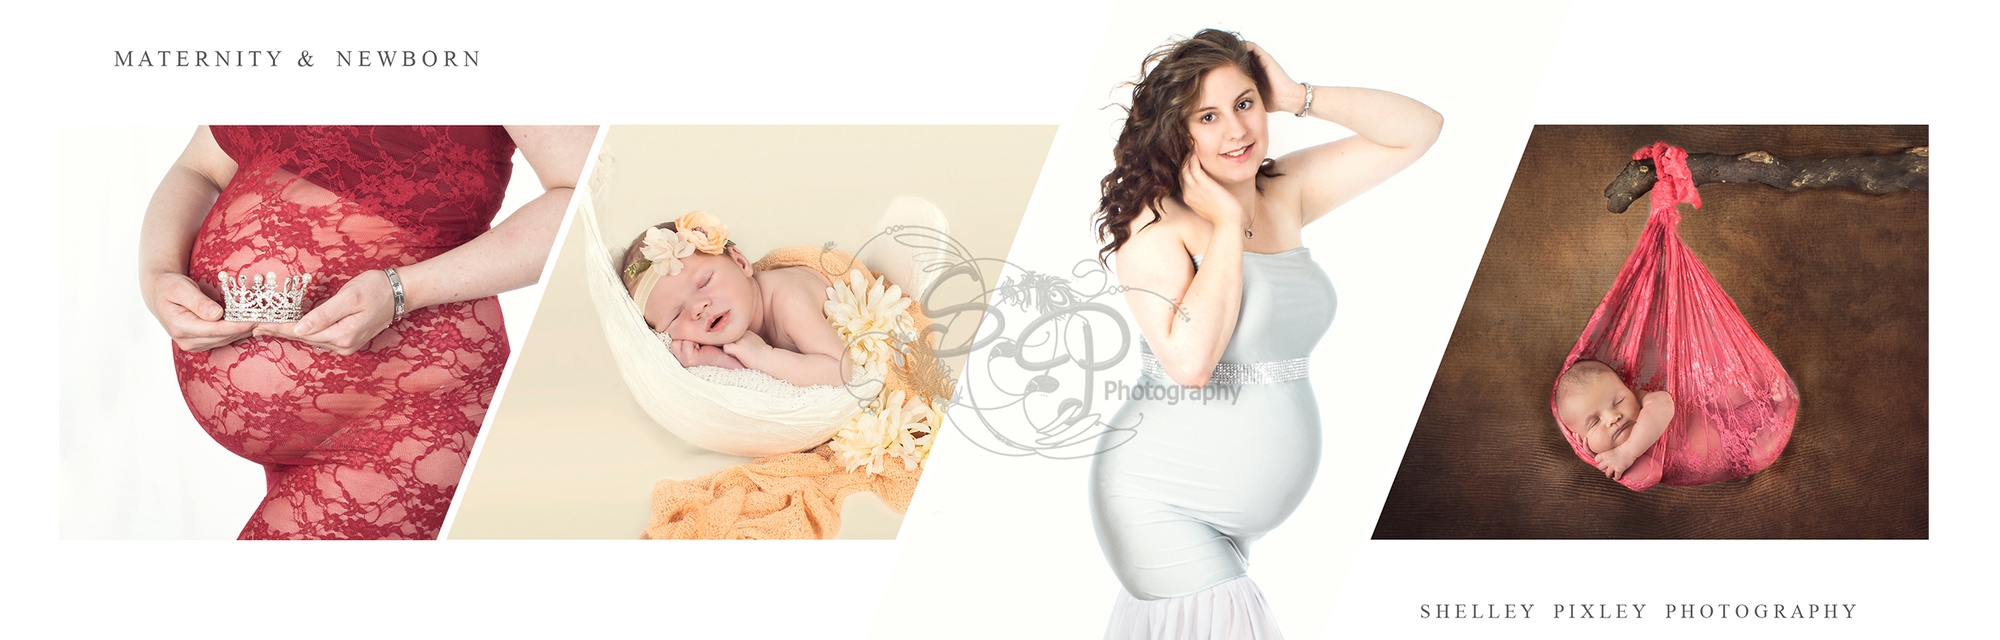 Maternity & Baby Session 2019